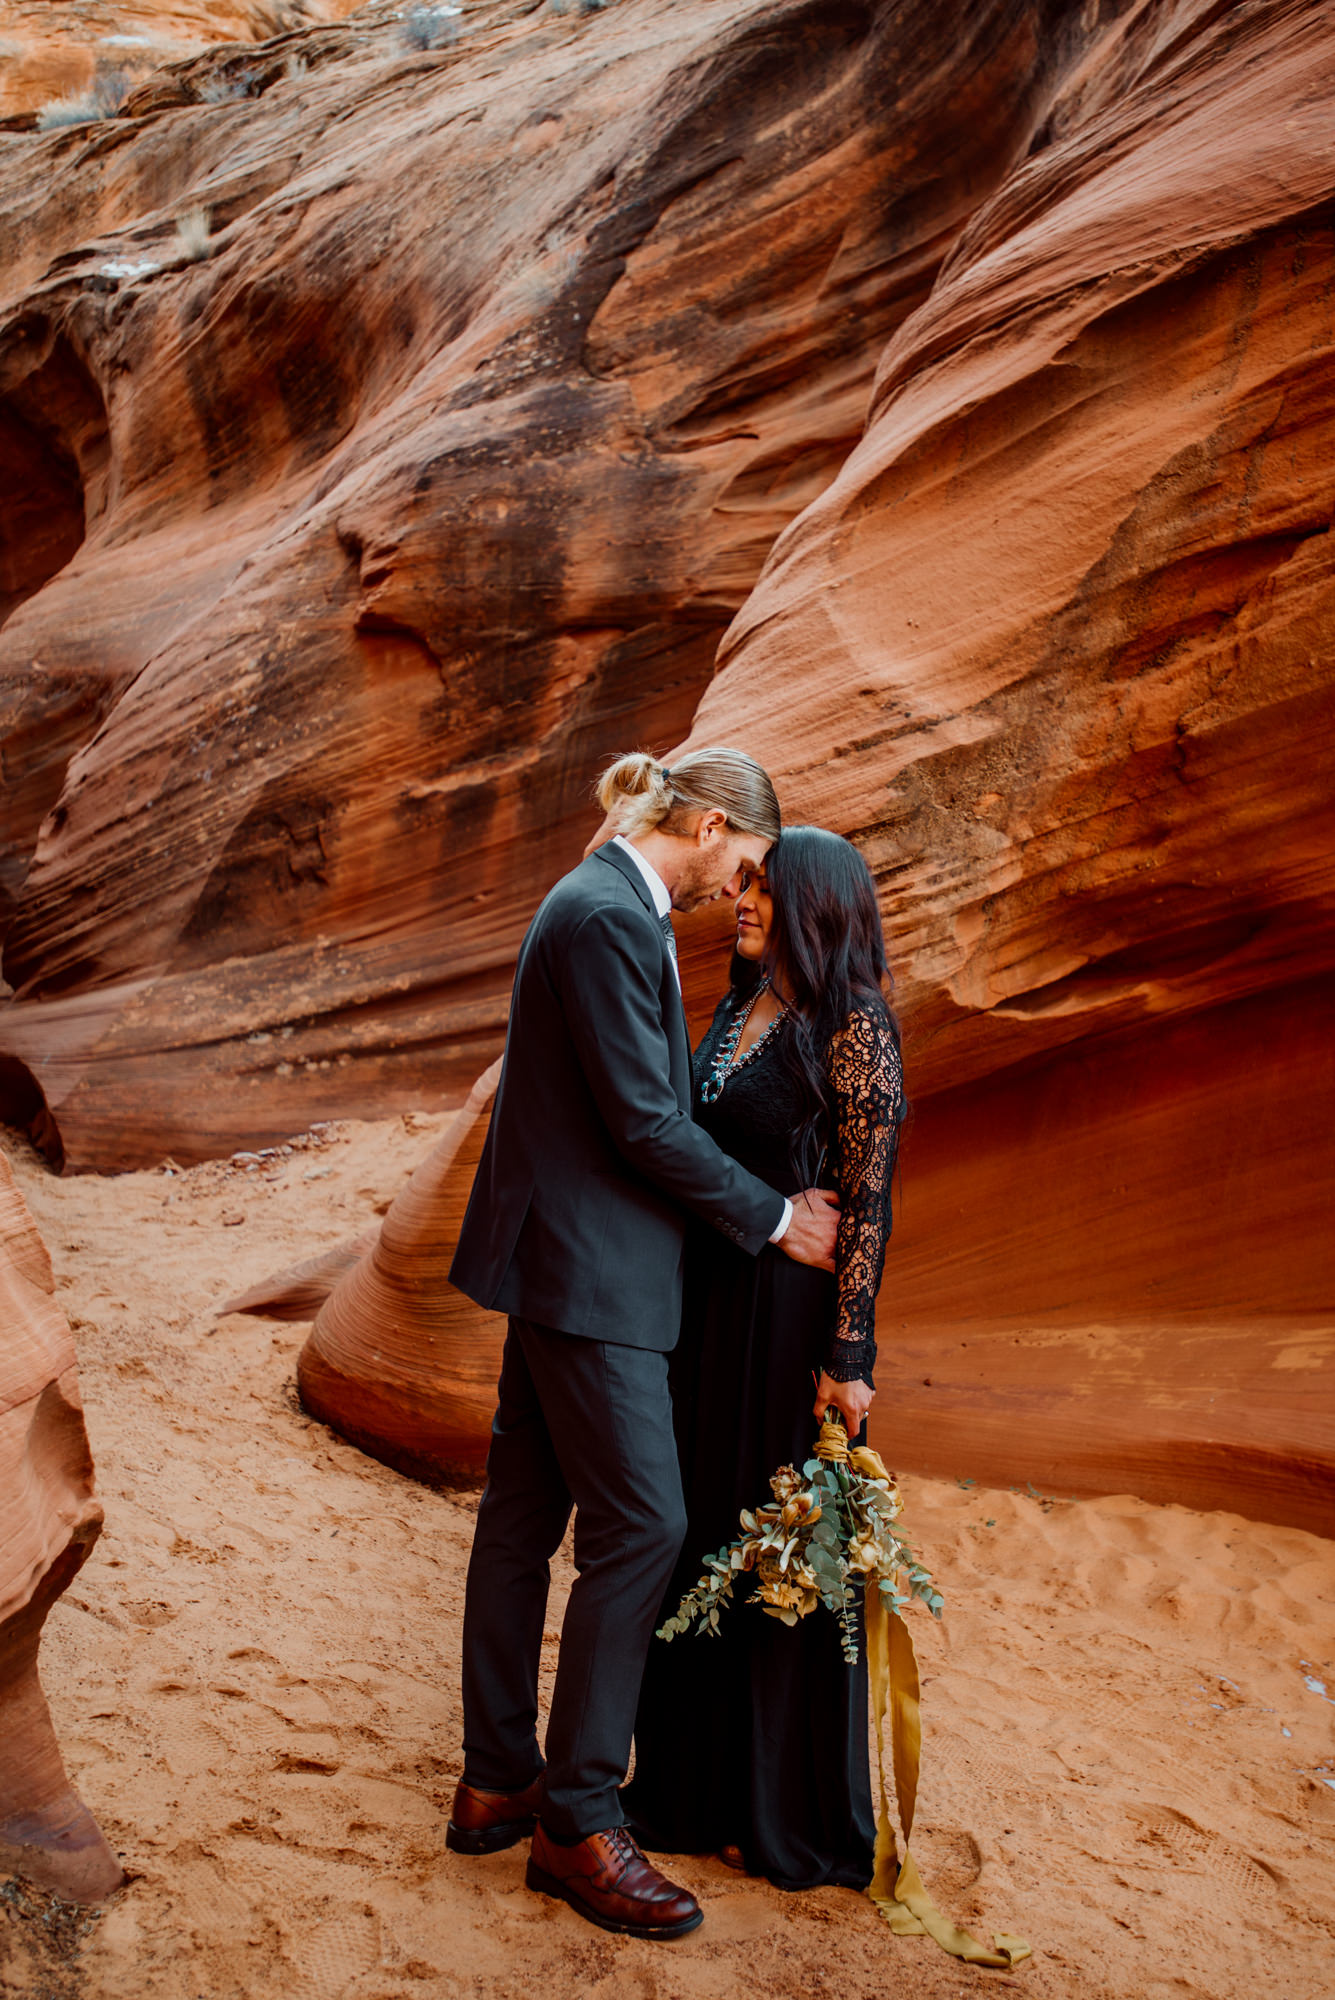 Shio and Ron share a quiet moment in the slot canyons.jpg